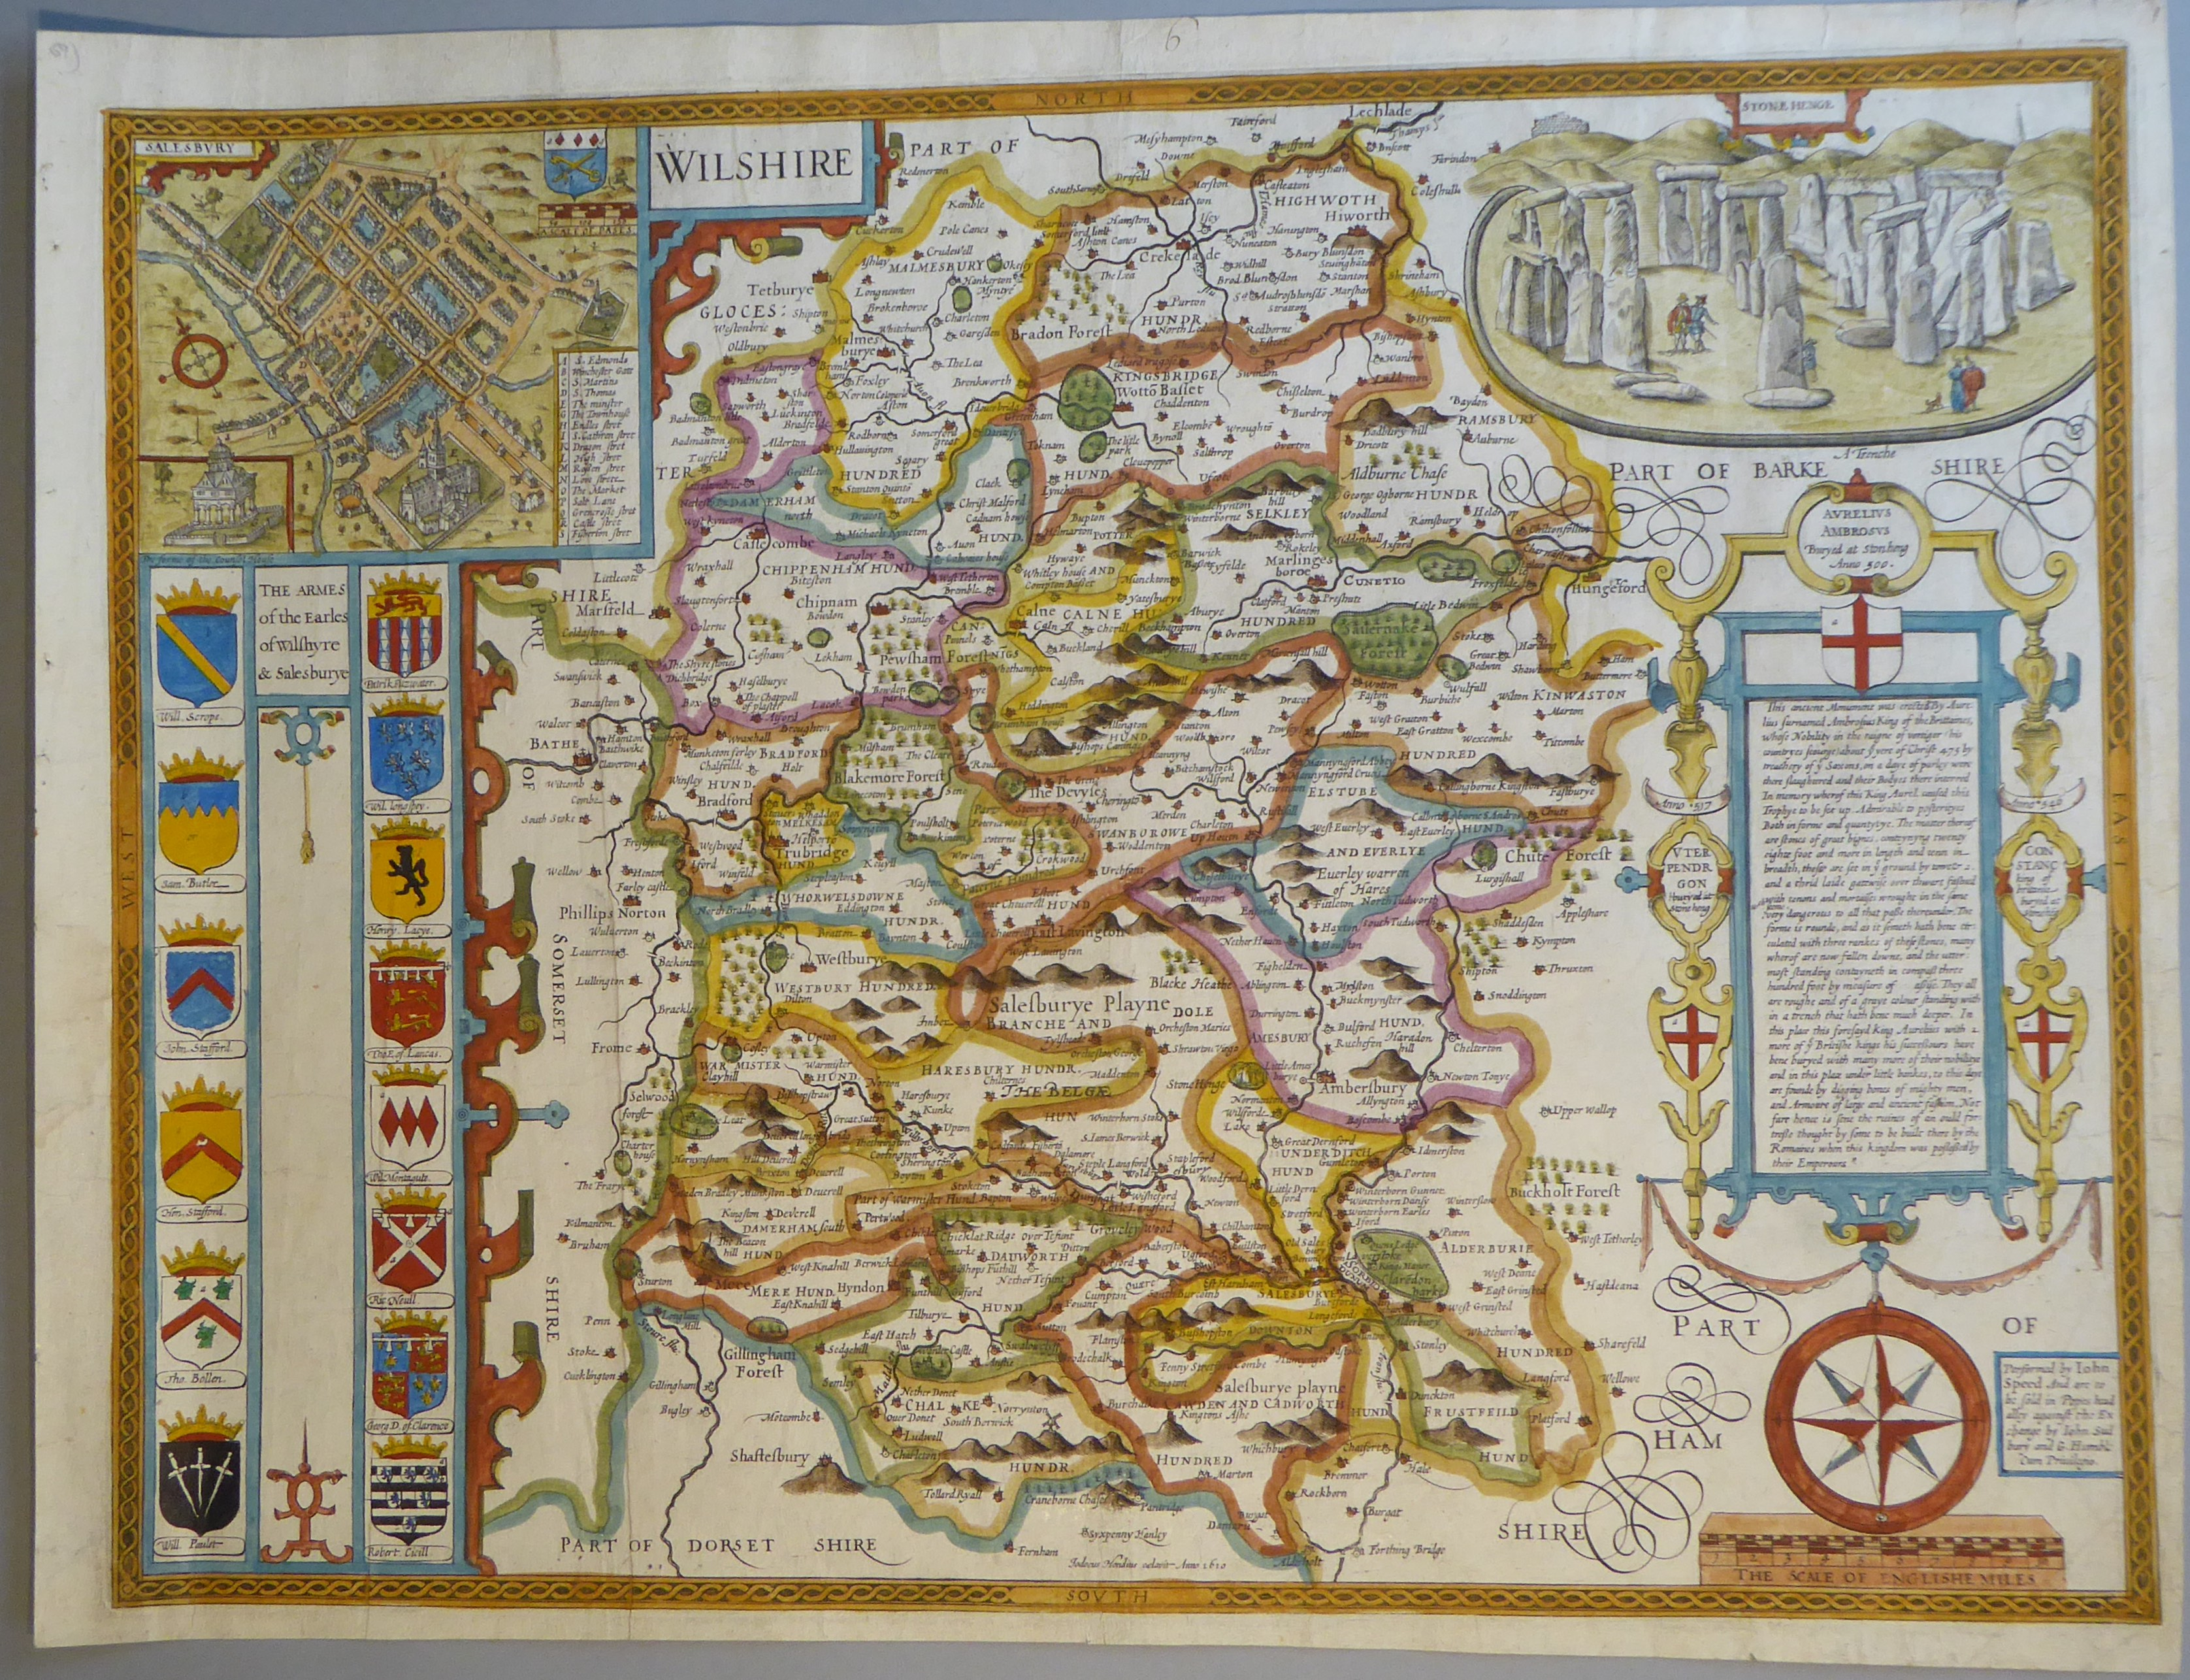 Lot 24 - A C17th hand coloured copper engraved map of Wiltshire by John Speed, c1627?